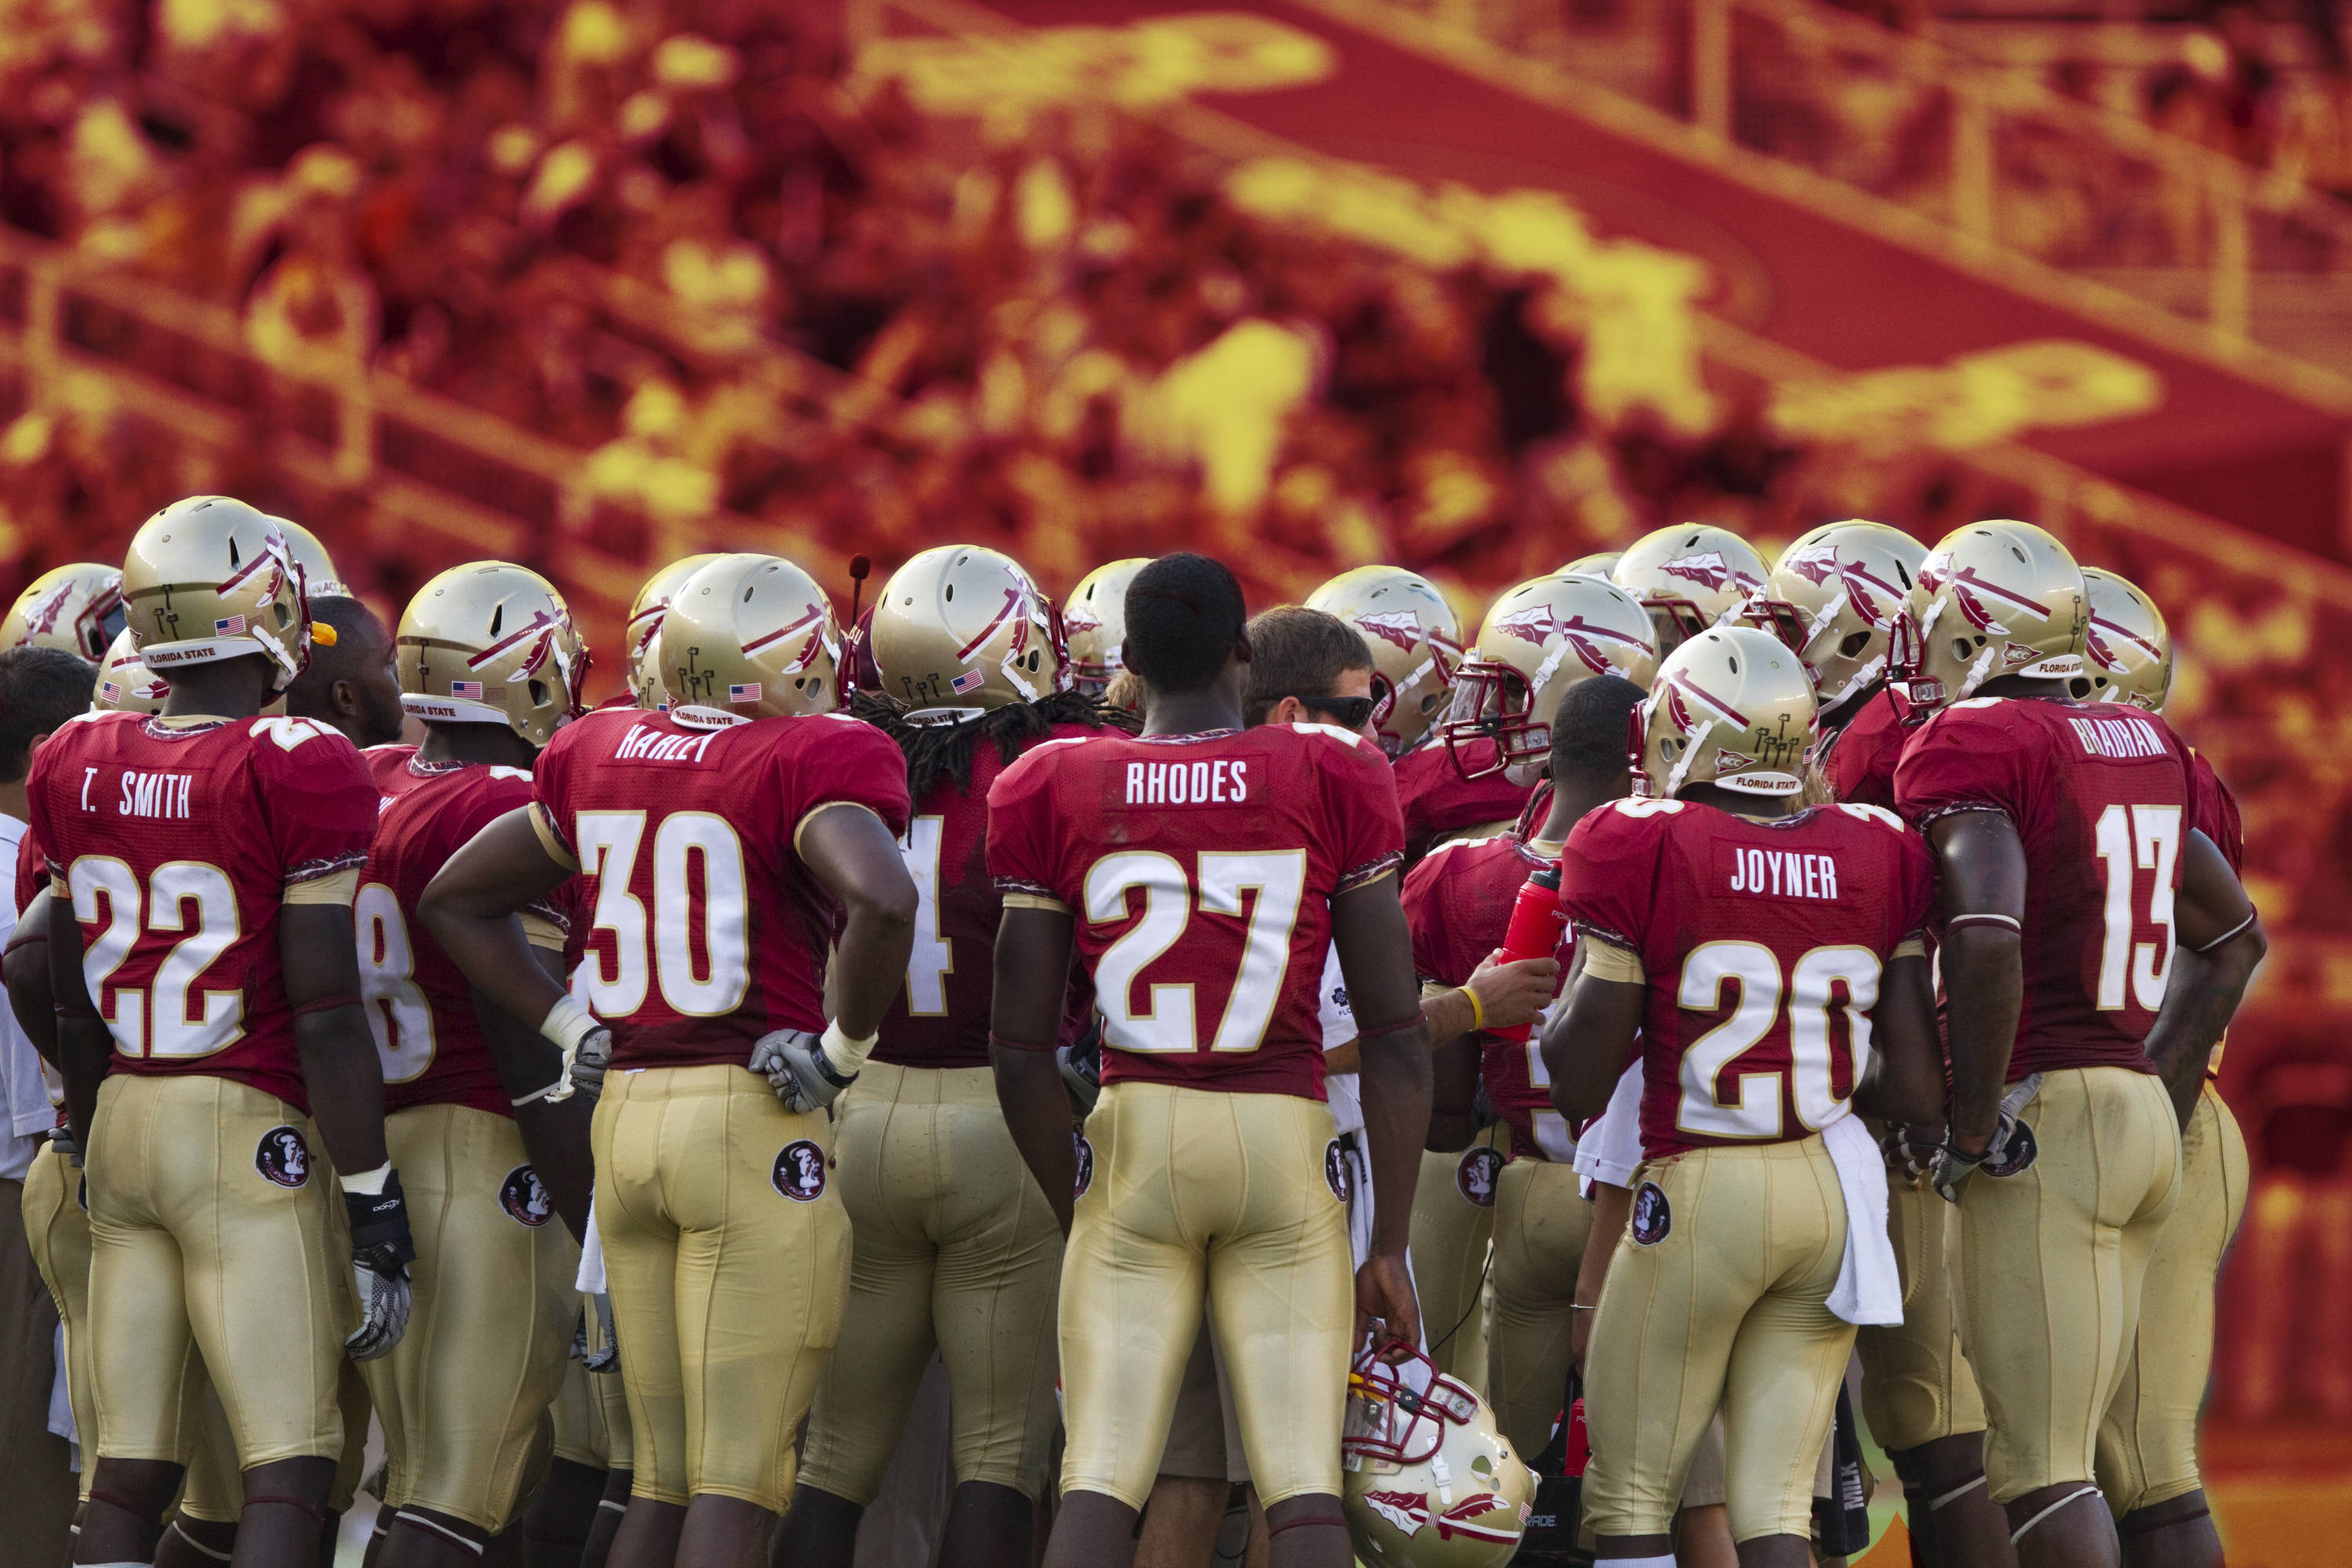 Jimbo Fisher talks with the team during a timeout in the second half of the game against BYU.  (photo illustration)